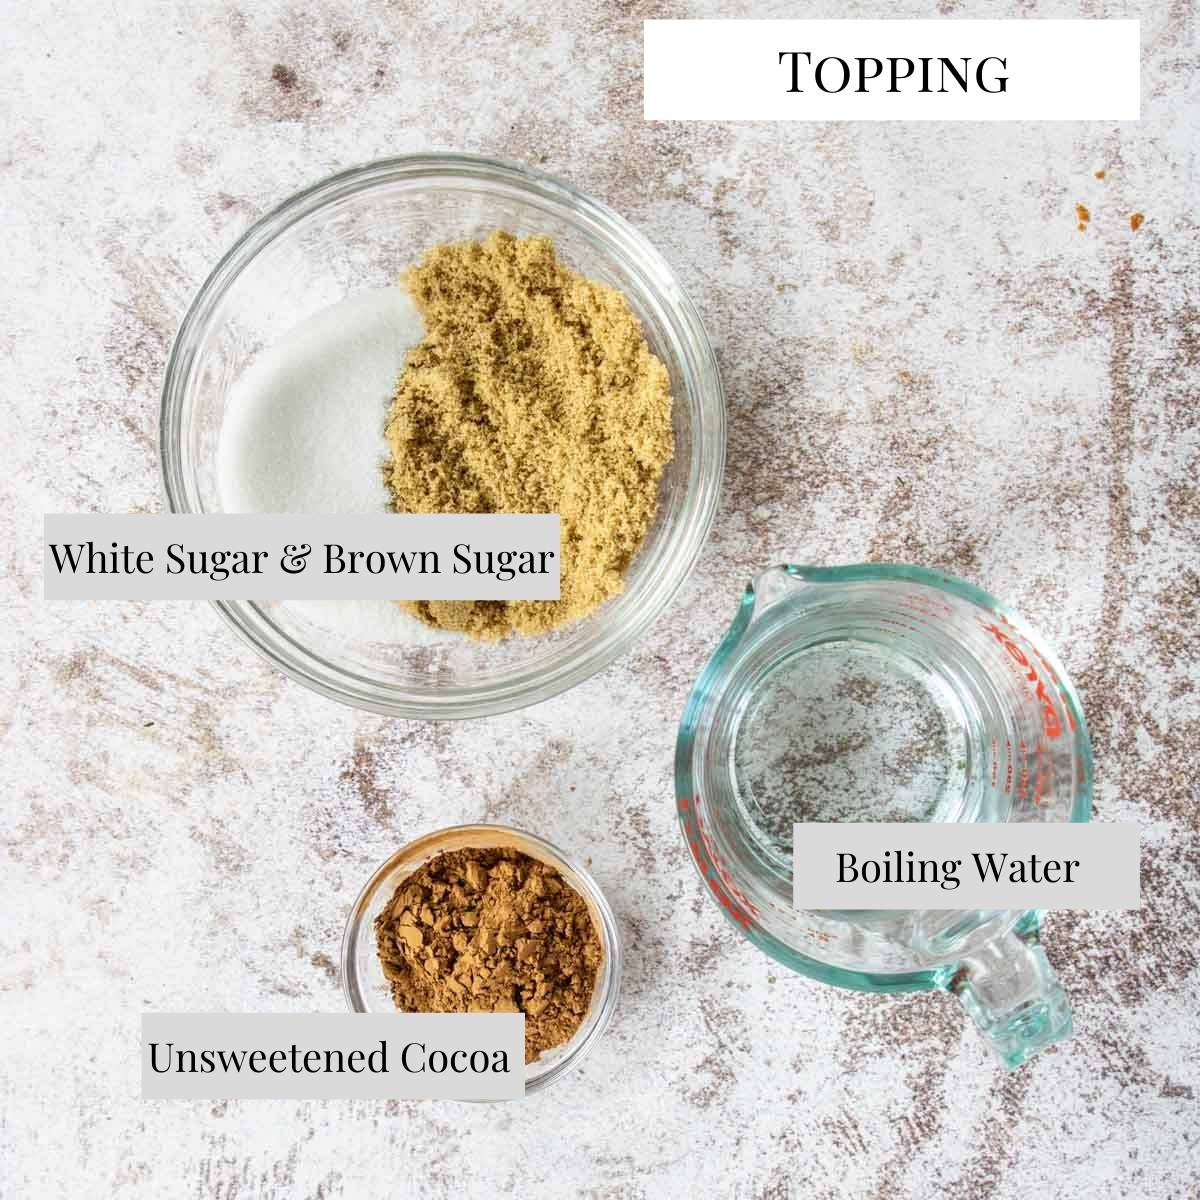 topping ingredients for chocolate pudding cake, with text